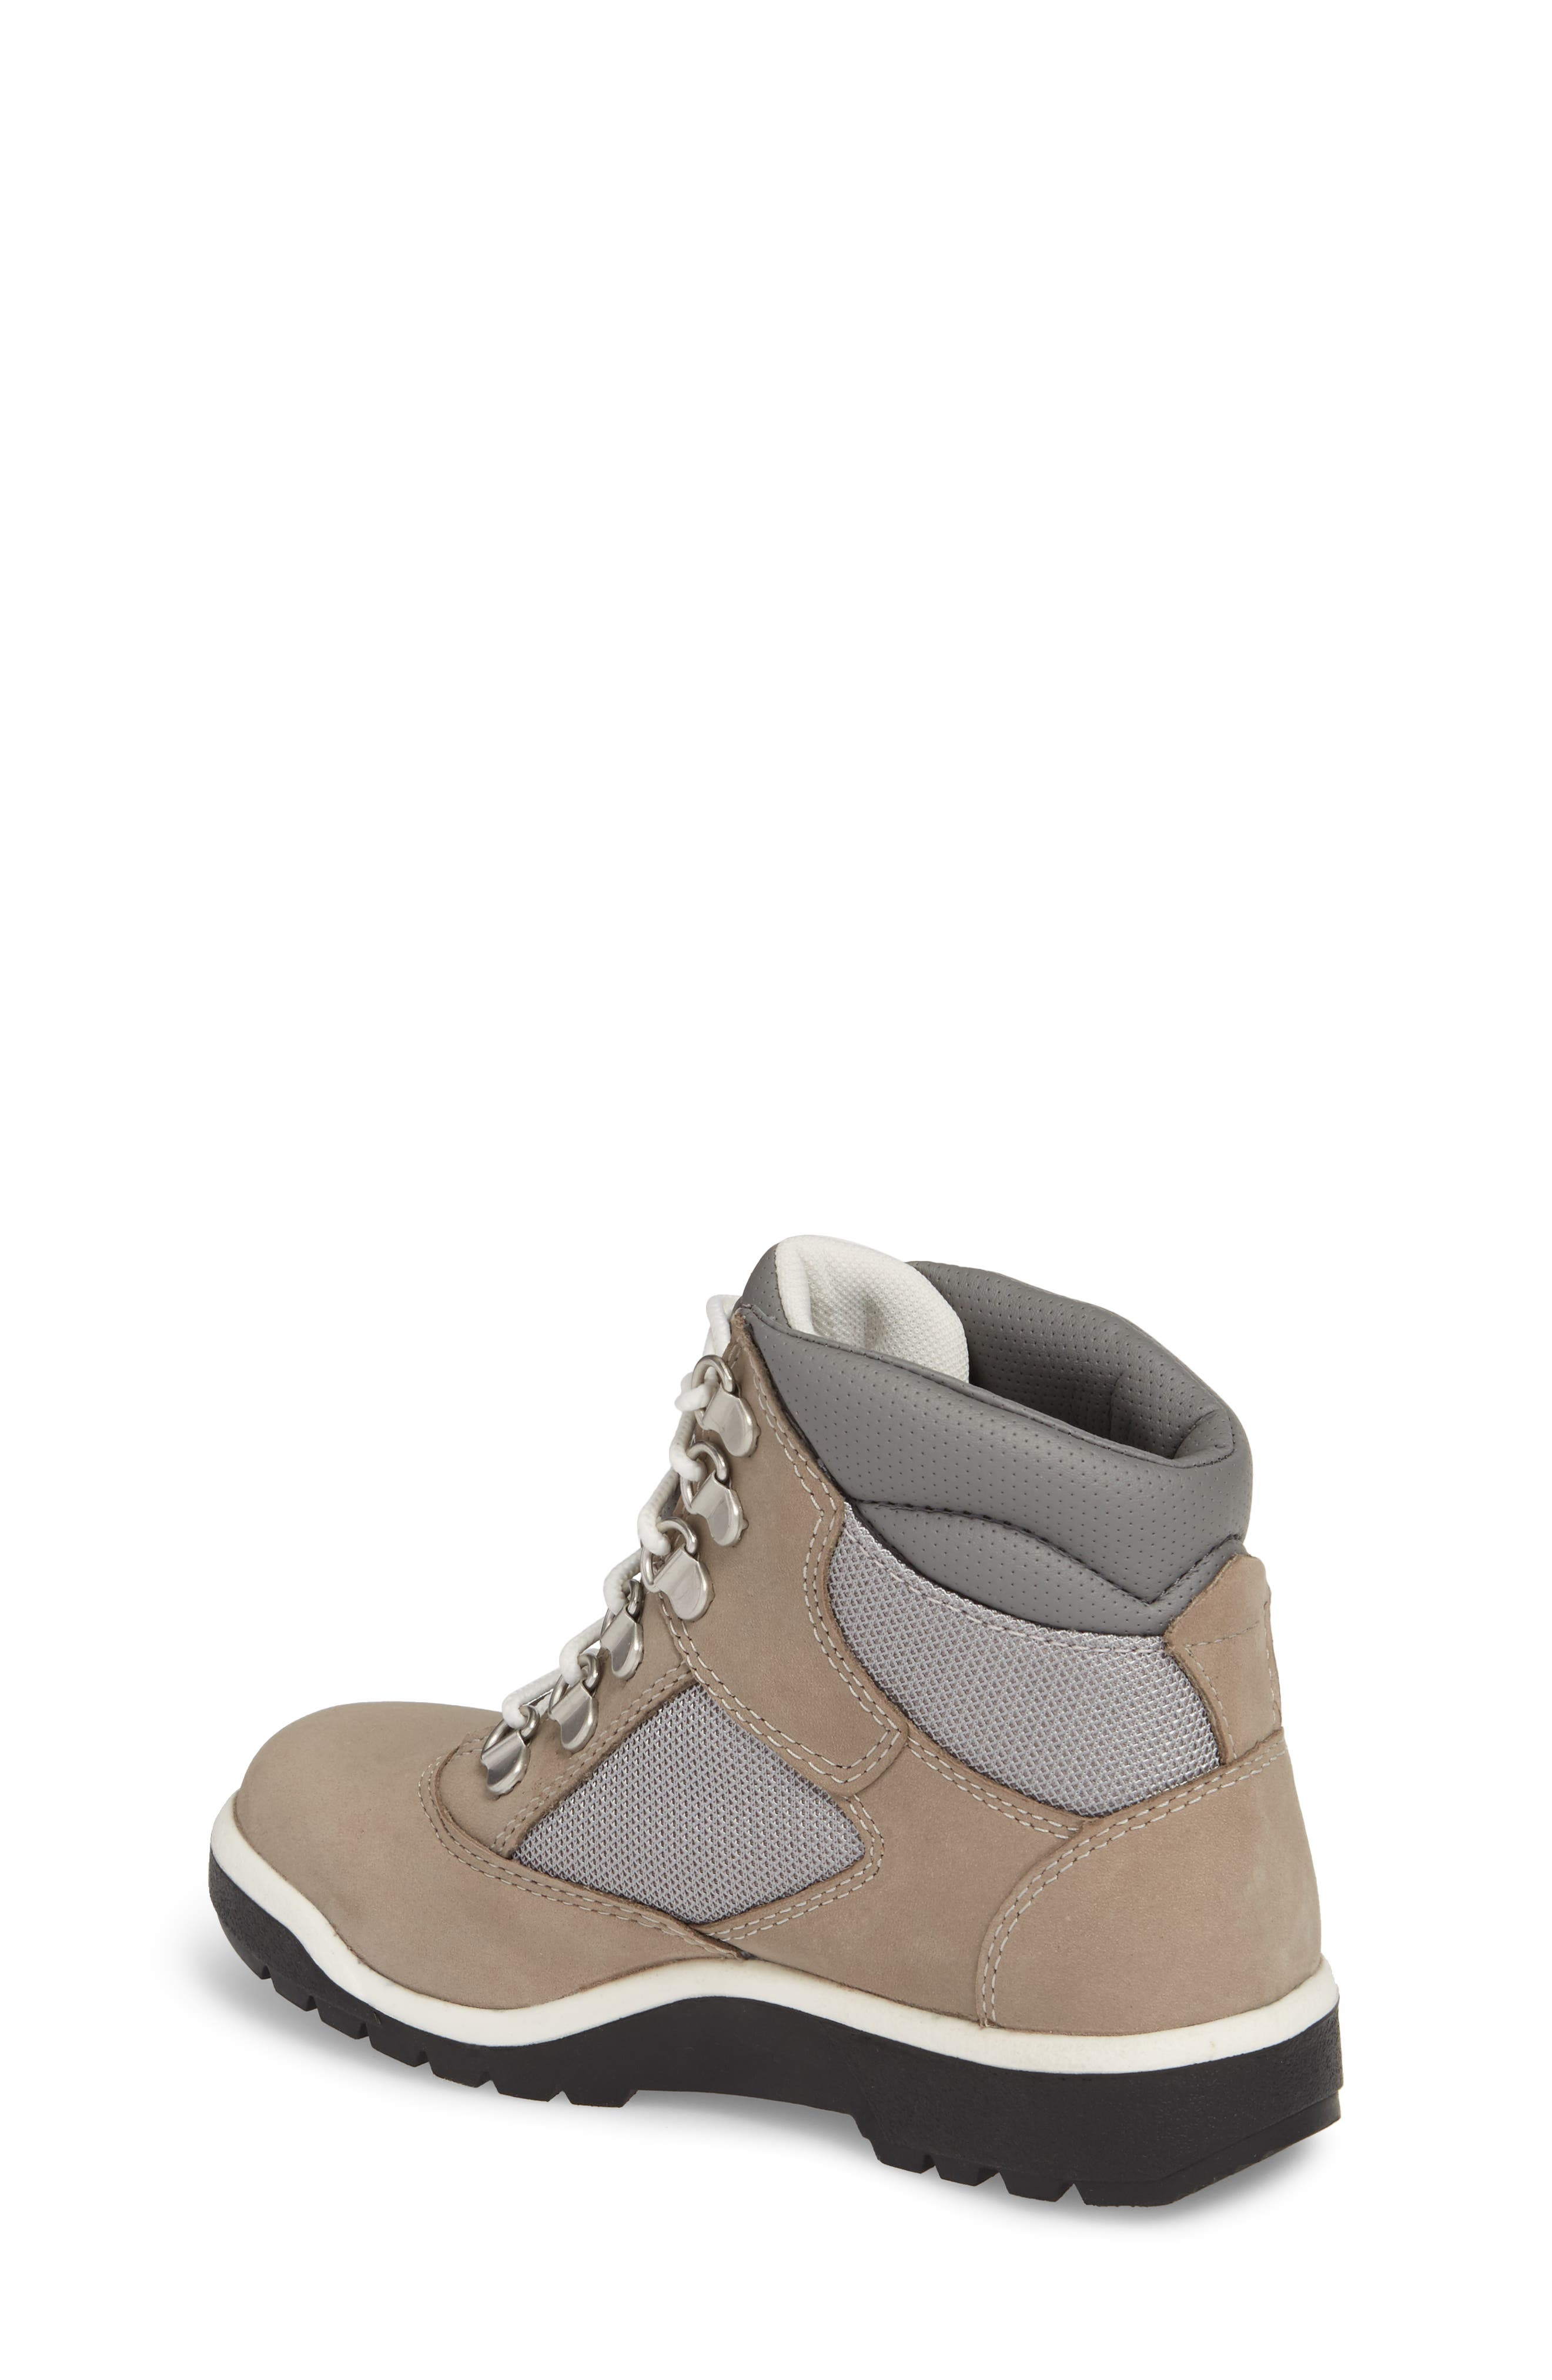 Alternate Image 2  - Timberland Water-Resistant 6-Inch Field Boot (Toddler, Little Kid & Big Kid)